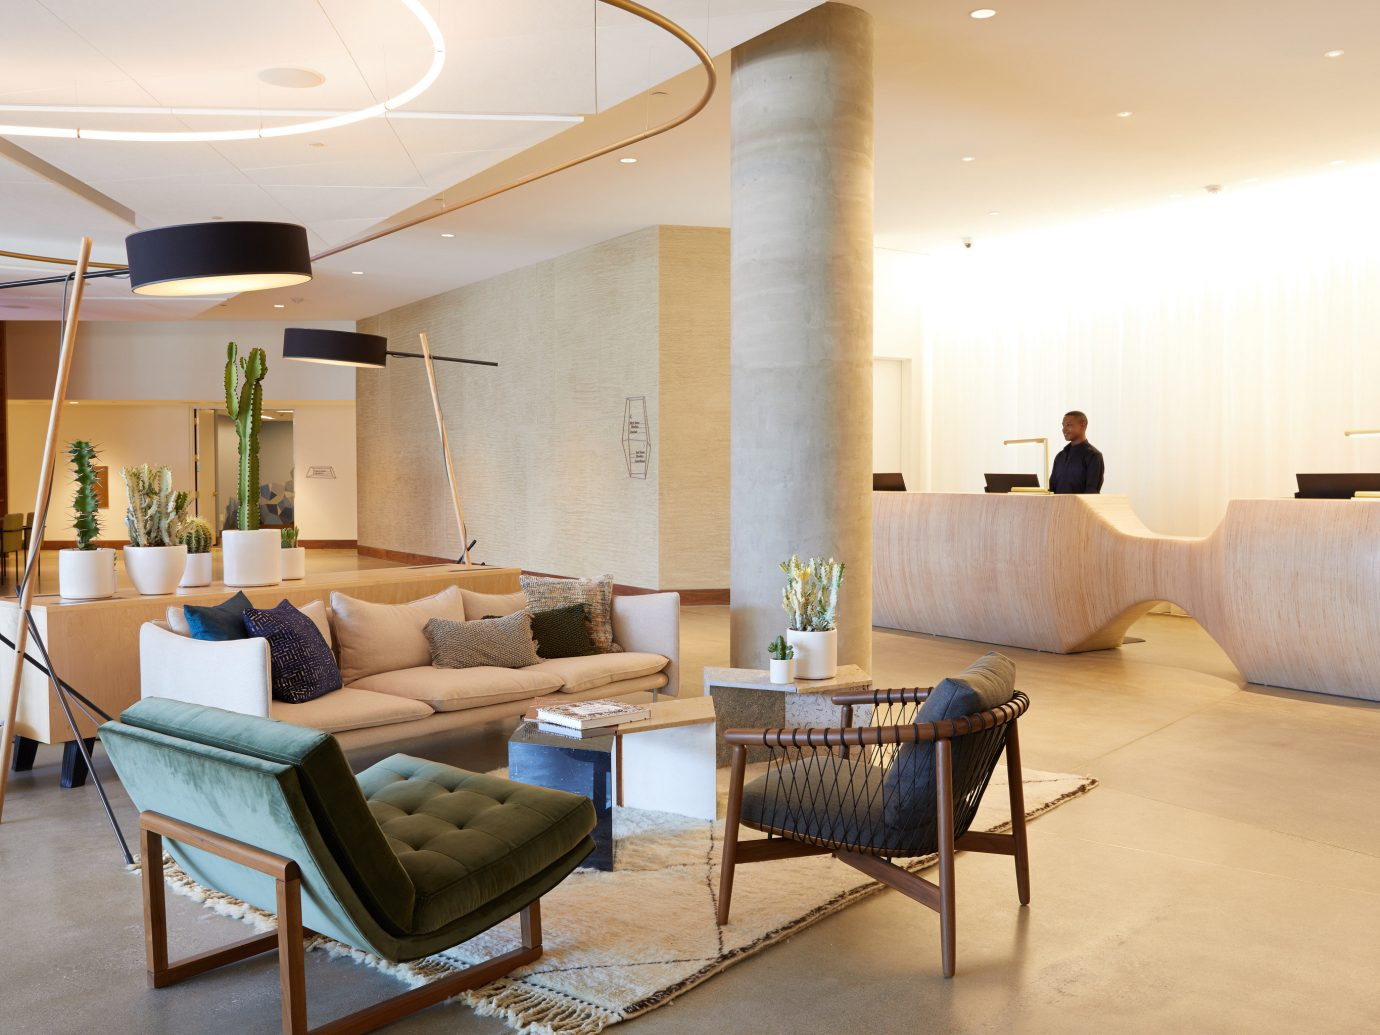 Arts + Culture Hotels Jetsetter Guides shopping Travel Trends Trip Ideas floor indoor wall room Living living room interior design ceiling Lobby real estate table flooring furniture interior designer loft house apartment penthouse apartment area